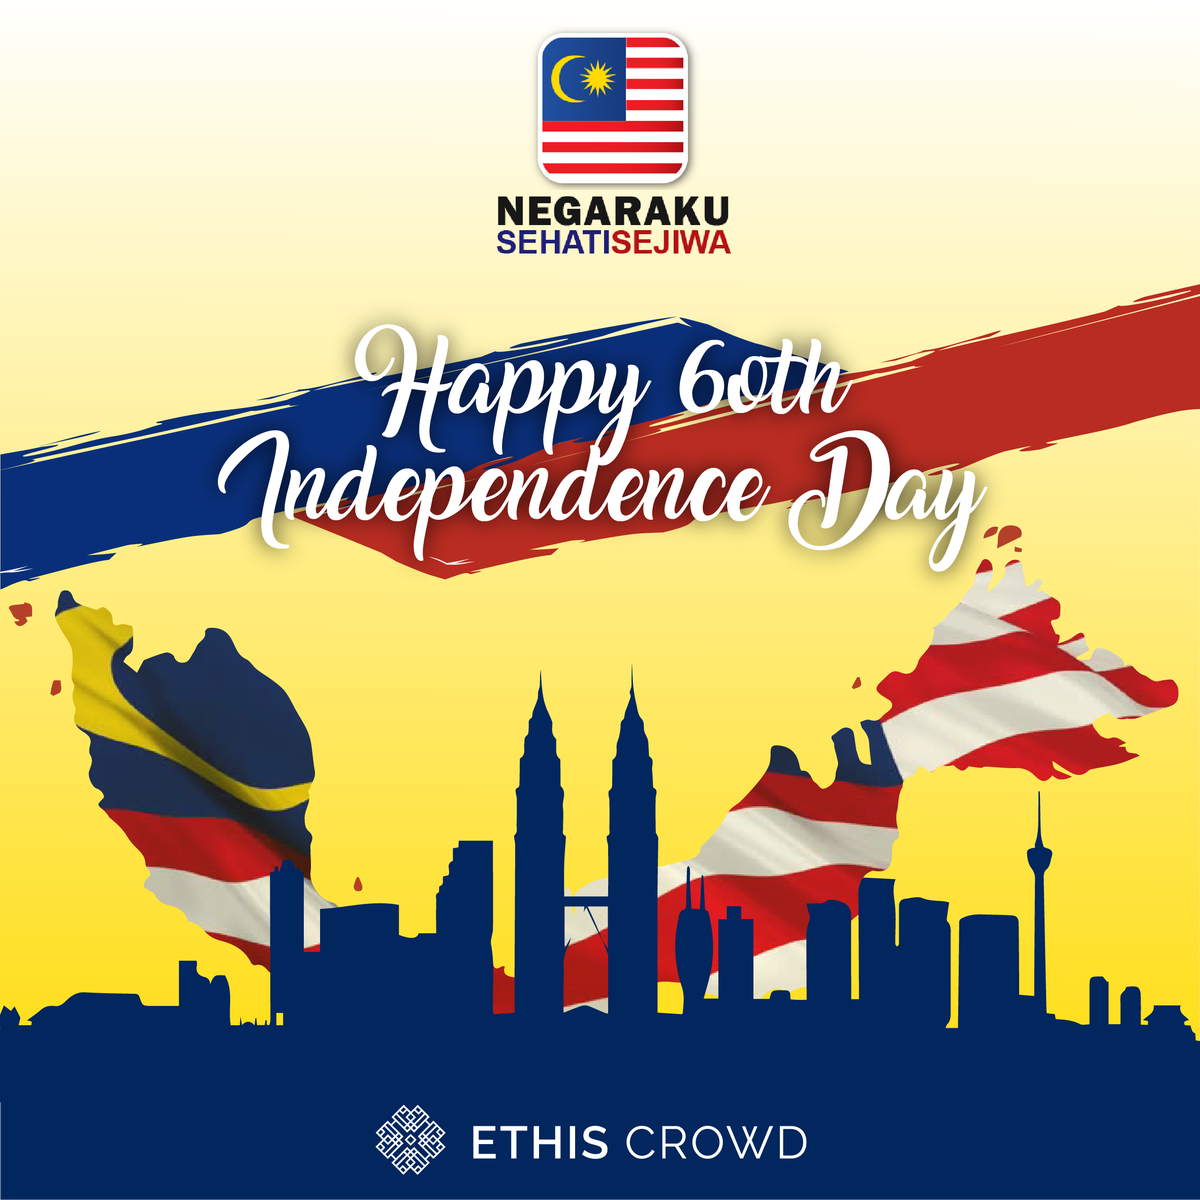 EthisCrowd On Twitter Today We Celebrate Malaysias Independence Day With The Theme Of Negaraku Sehati Sejiwa Or My Country One Heart Soul